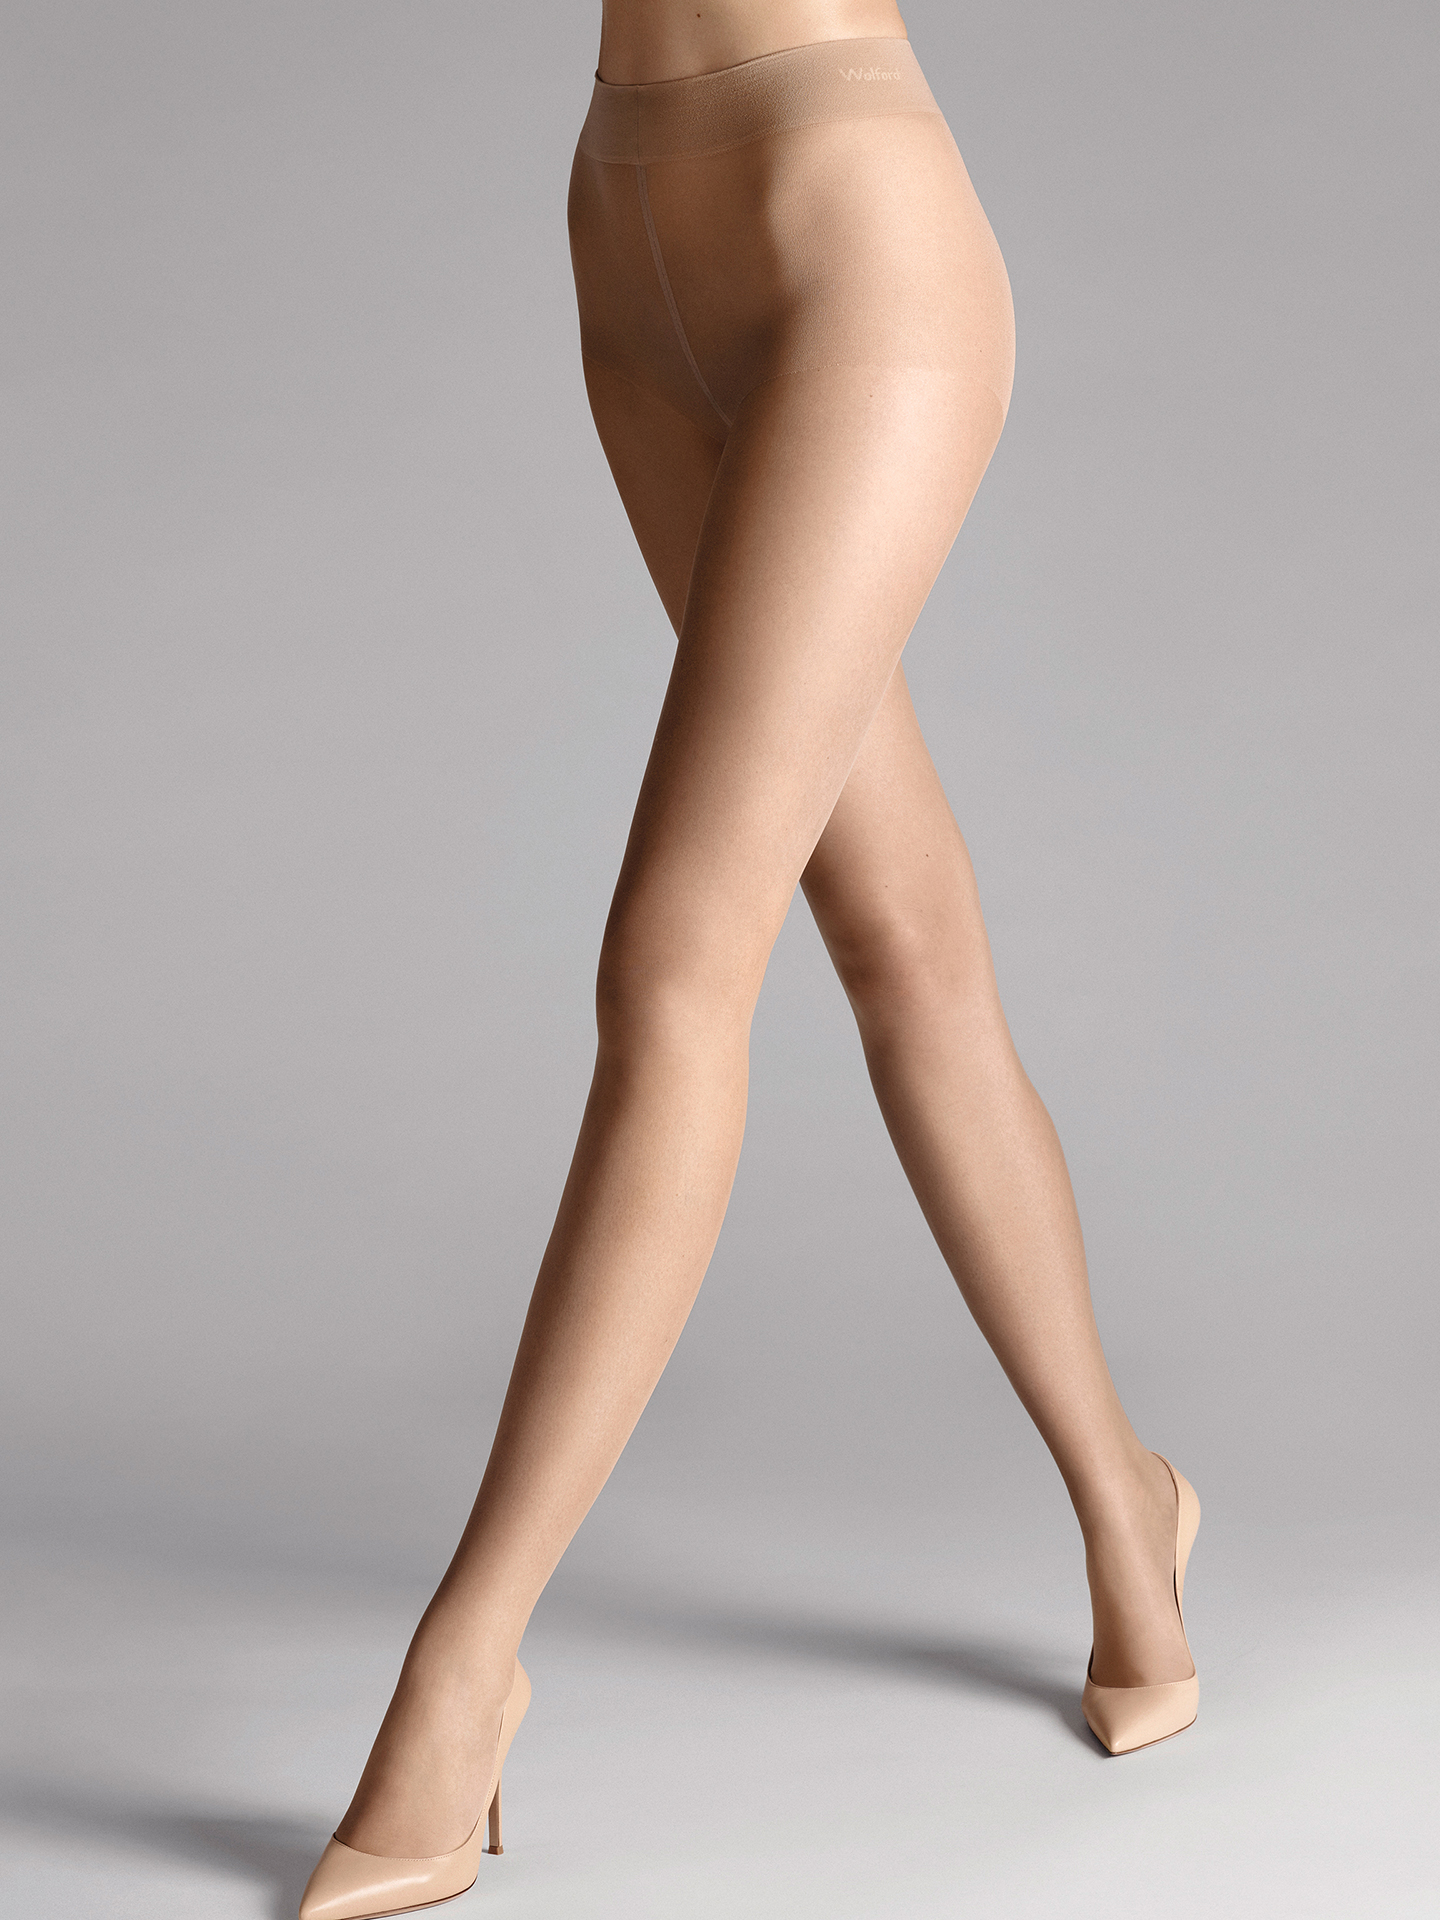 Pure 10 Tights - 4273 - XL | Sportbekleidung > Sporthosen > Tights | Wolford